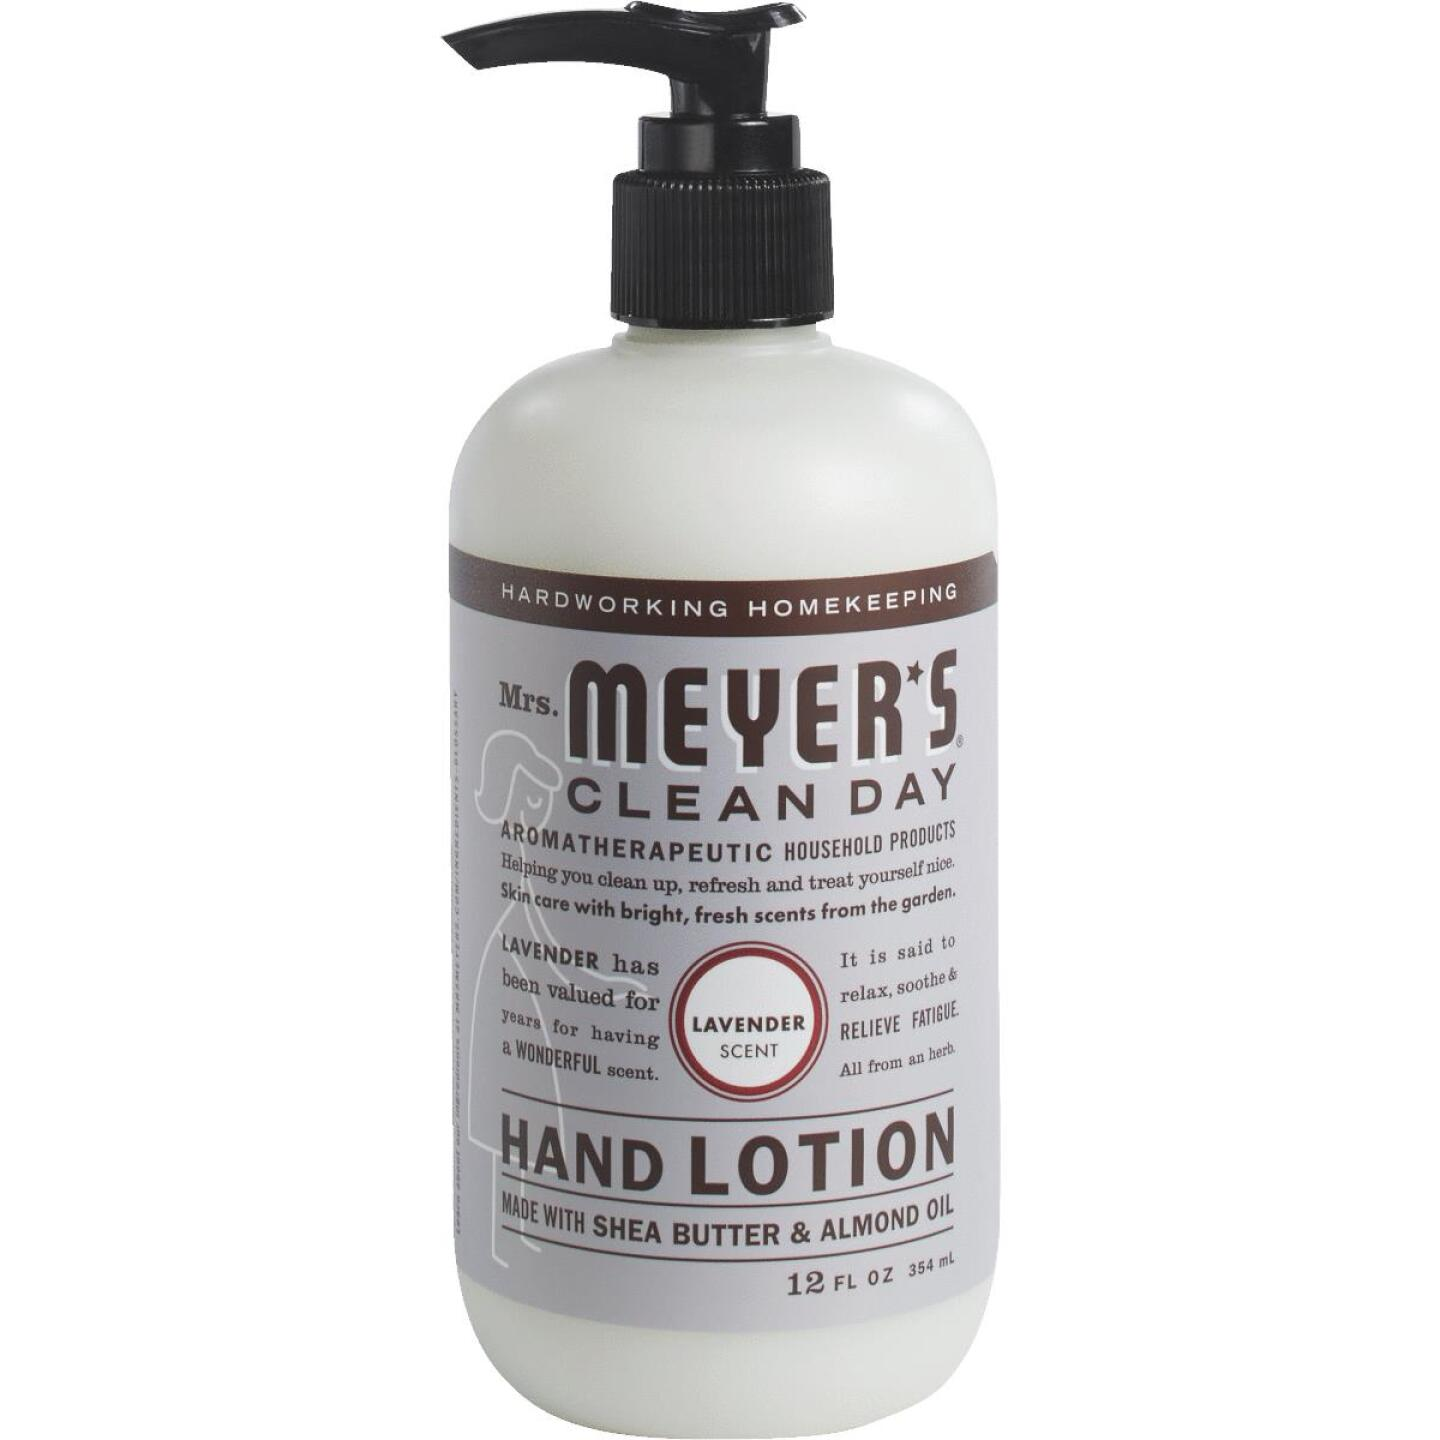 Mrs. Meyer's Clean Day 12 Oz. Lavender Hand Lotion Image 1